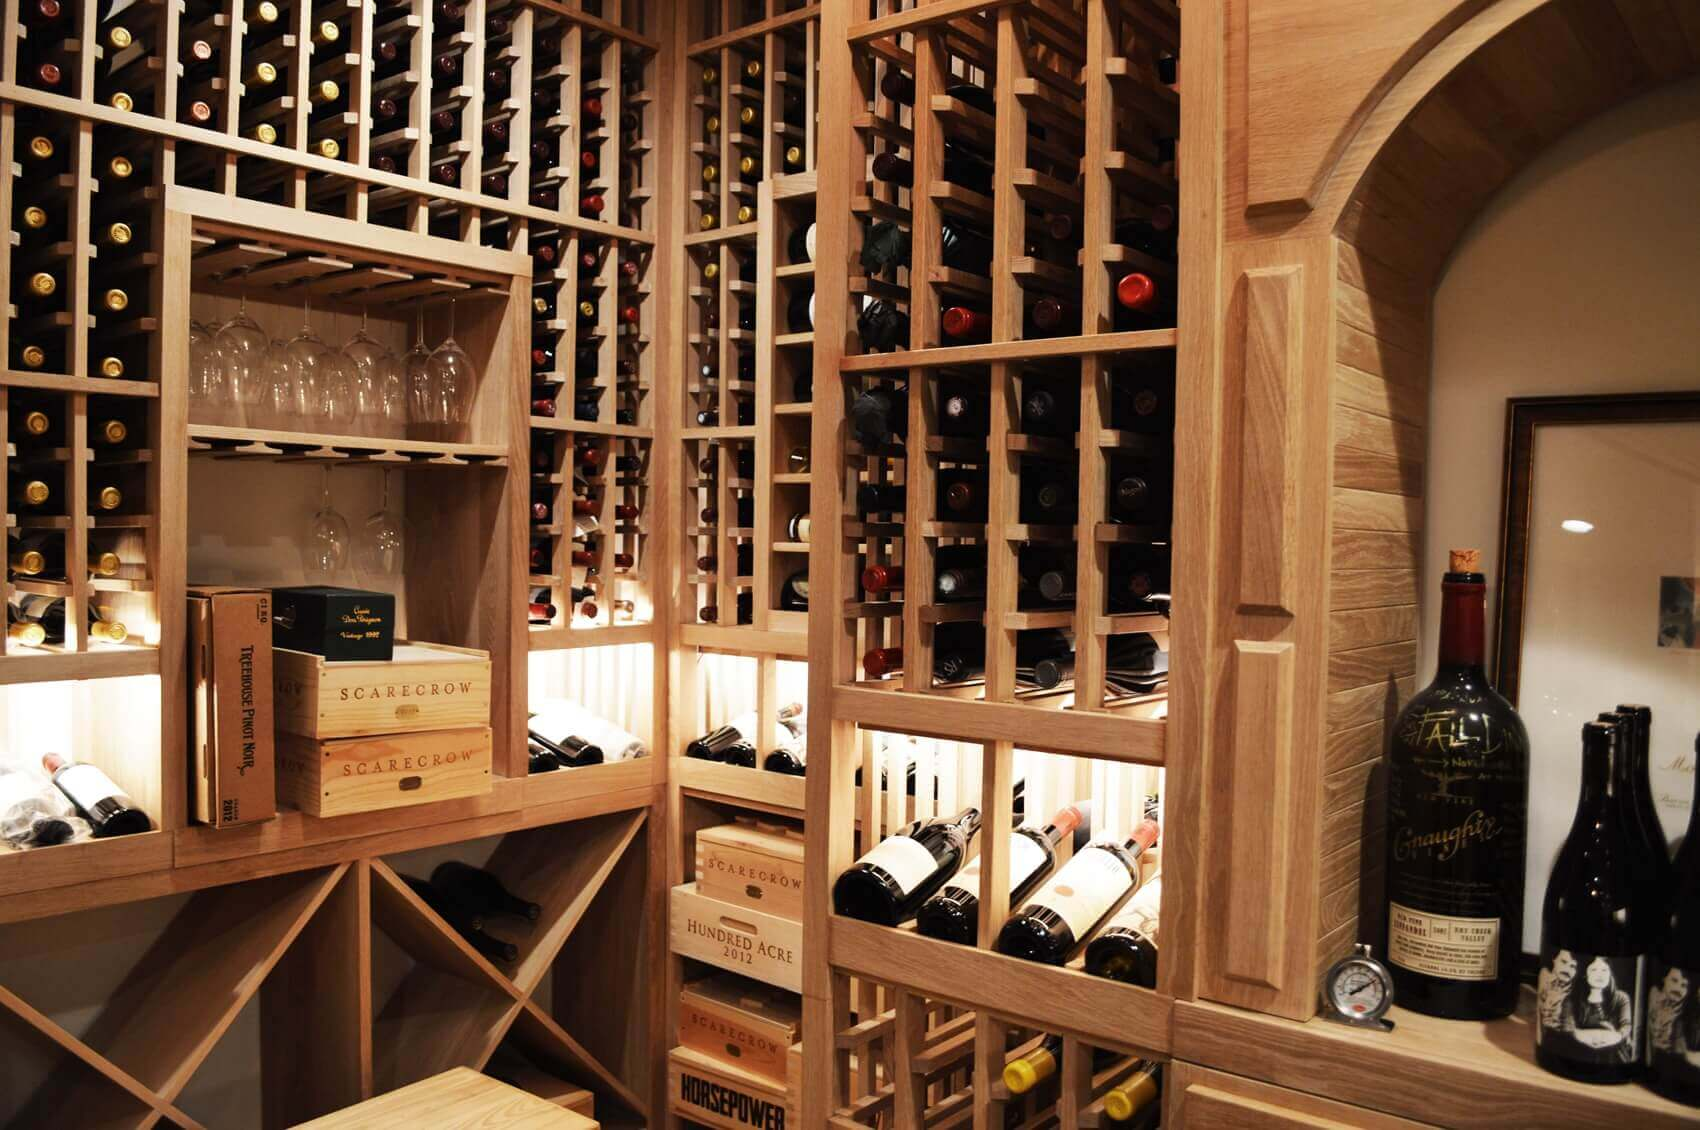 LED lighting was stragetically placed to highlight the client's favorite and most priced wines among his collection.